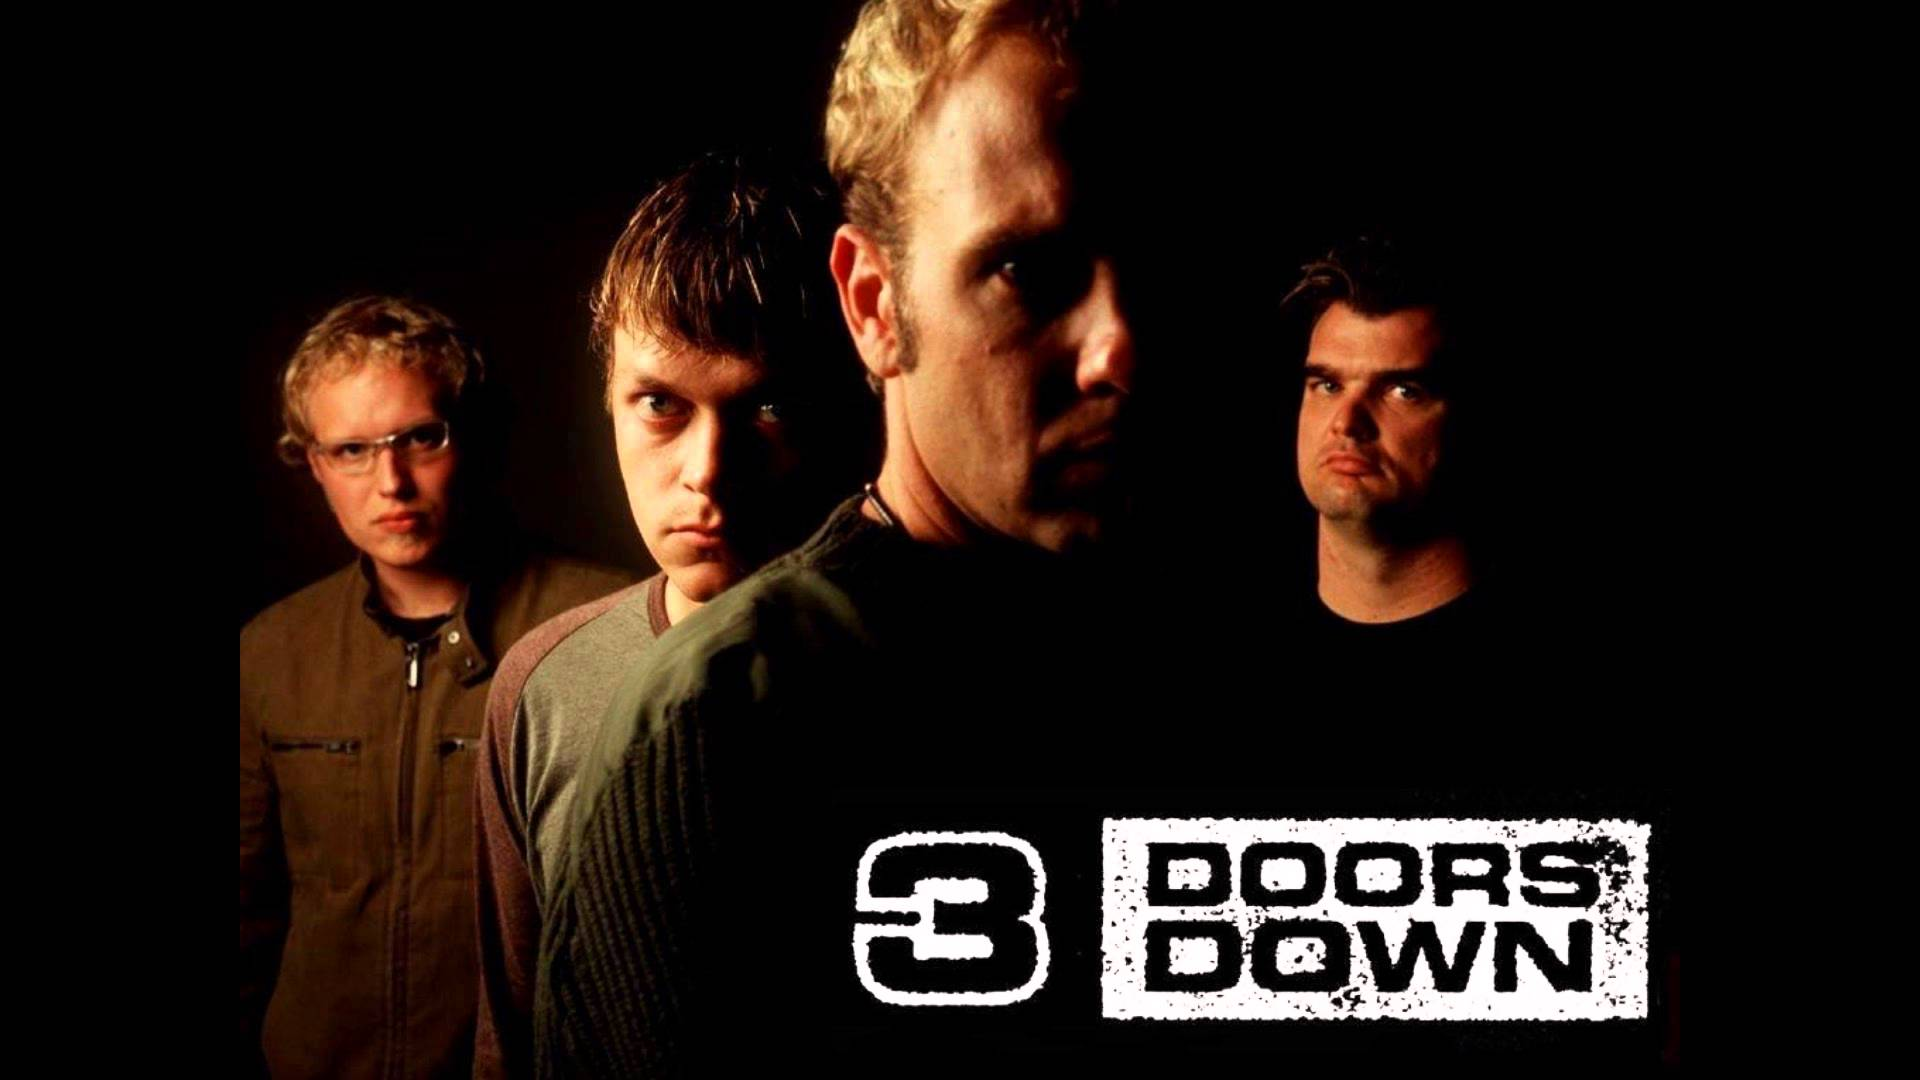 Le Meilleur 3 Doors Down Wallpapers High Quality Download Free Ce Mois Ci